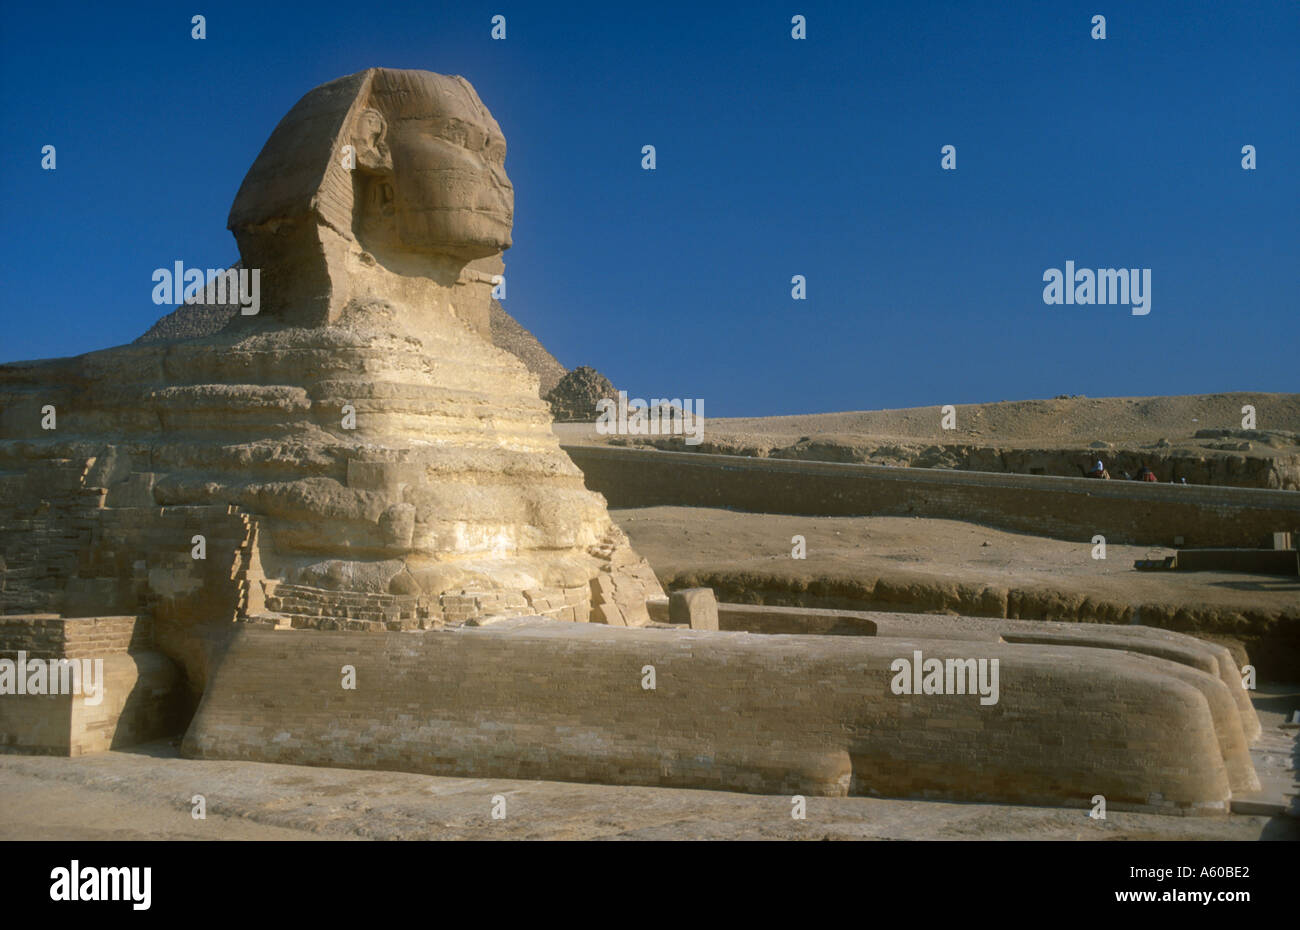 EGYPT Cairo Area Giza The Sphinx restored with Pyramids and tourists on camels in the background - Stock Image